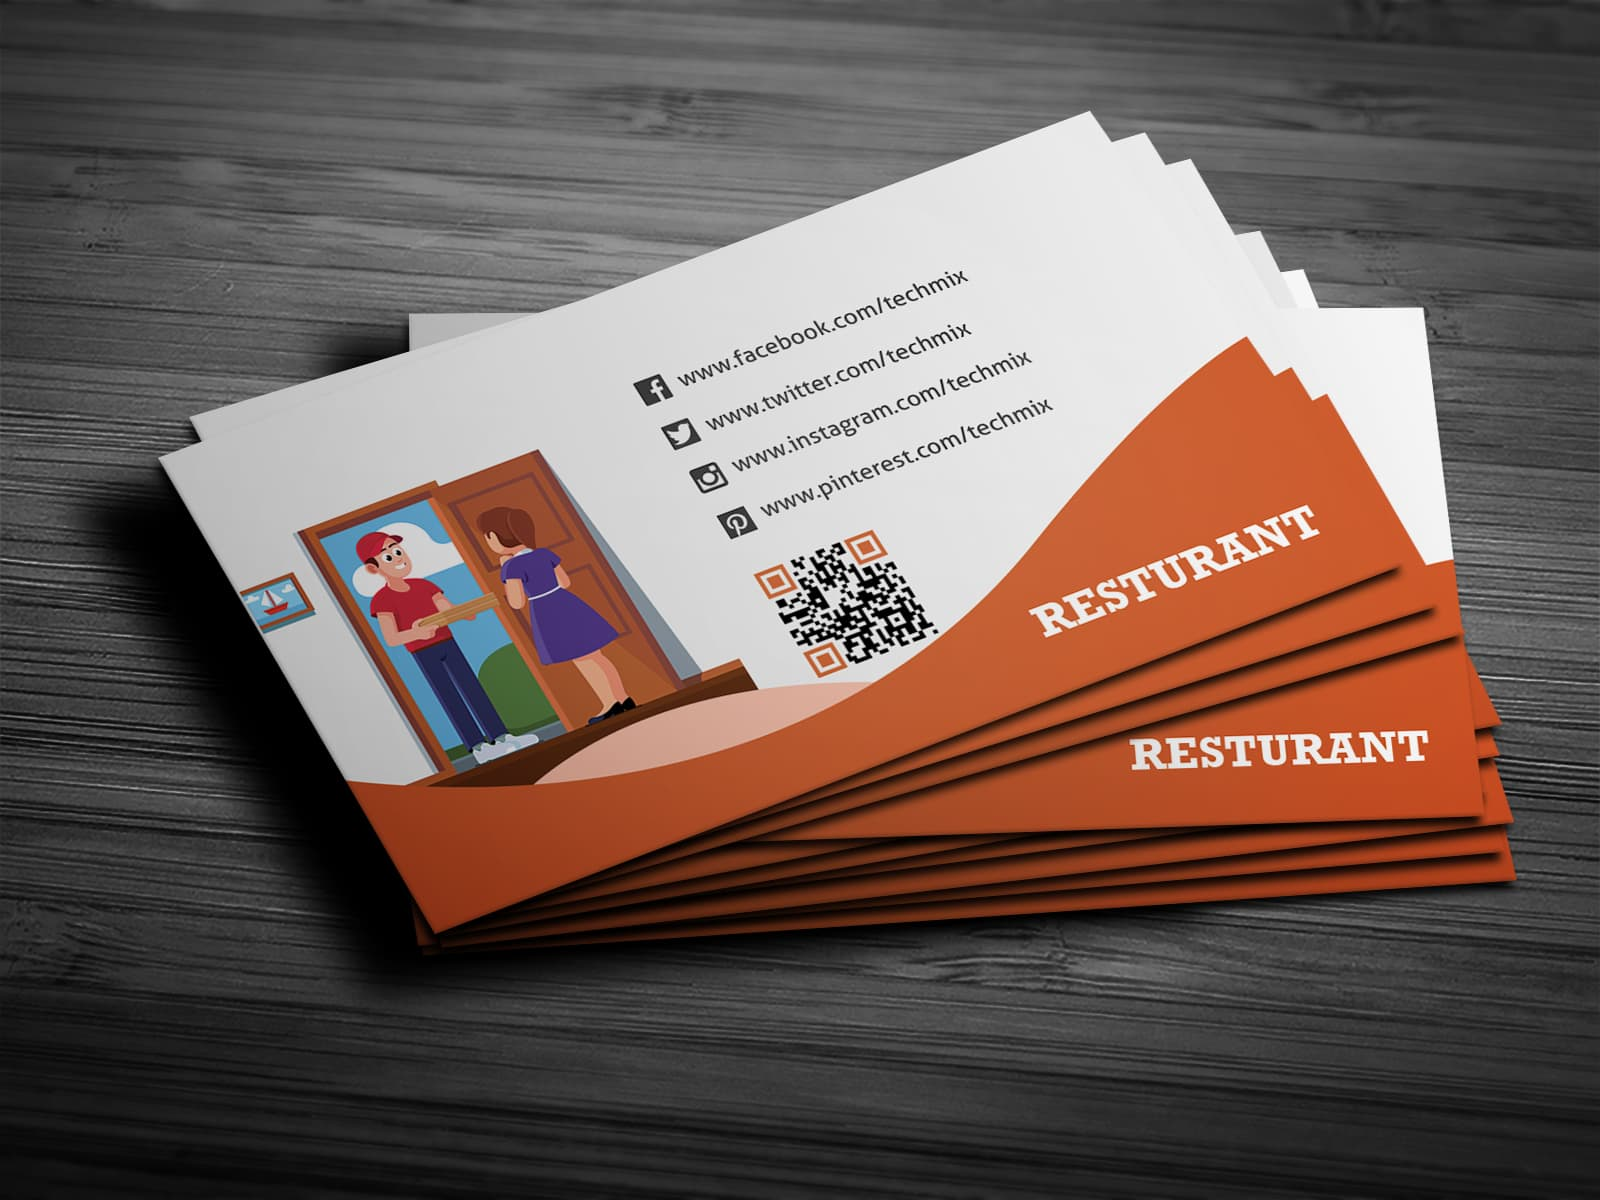 Food Delivery Man Business Card